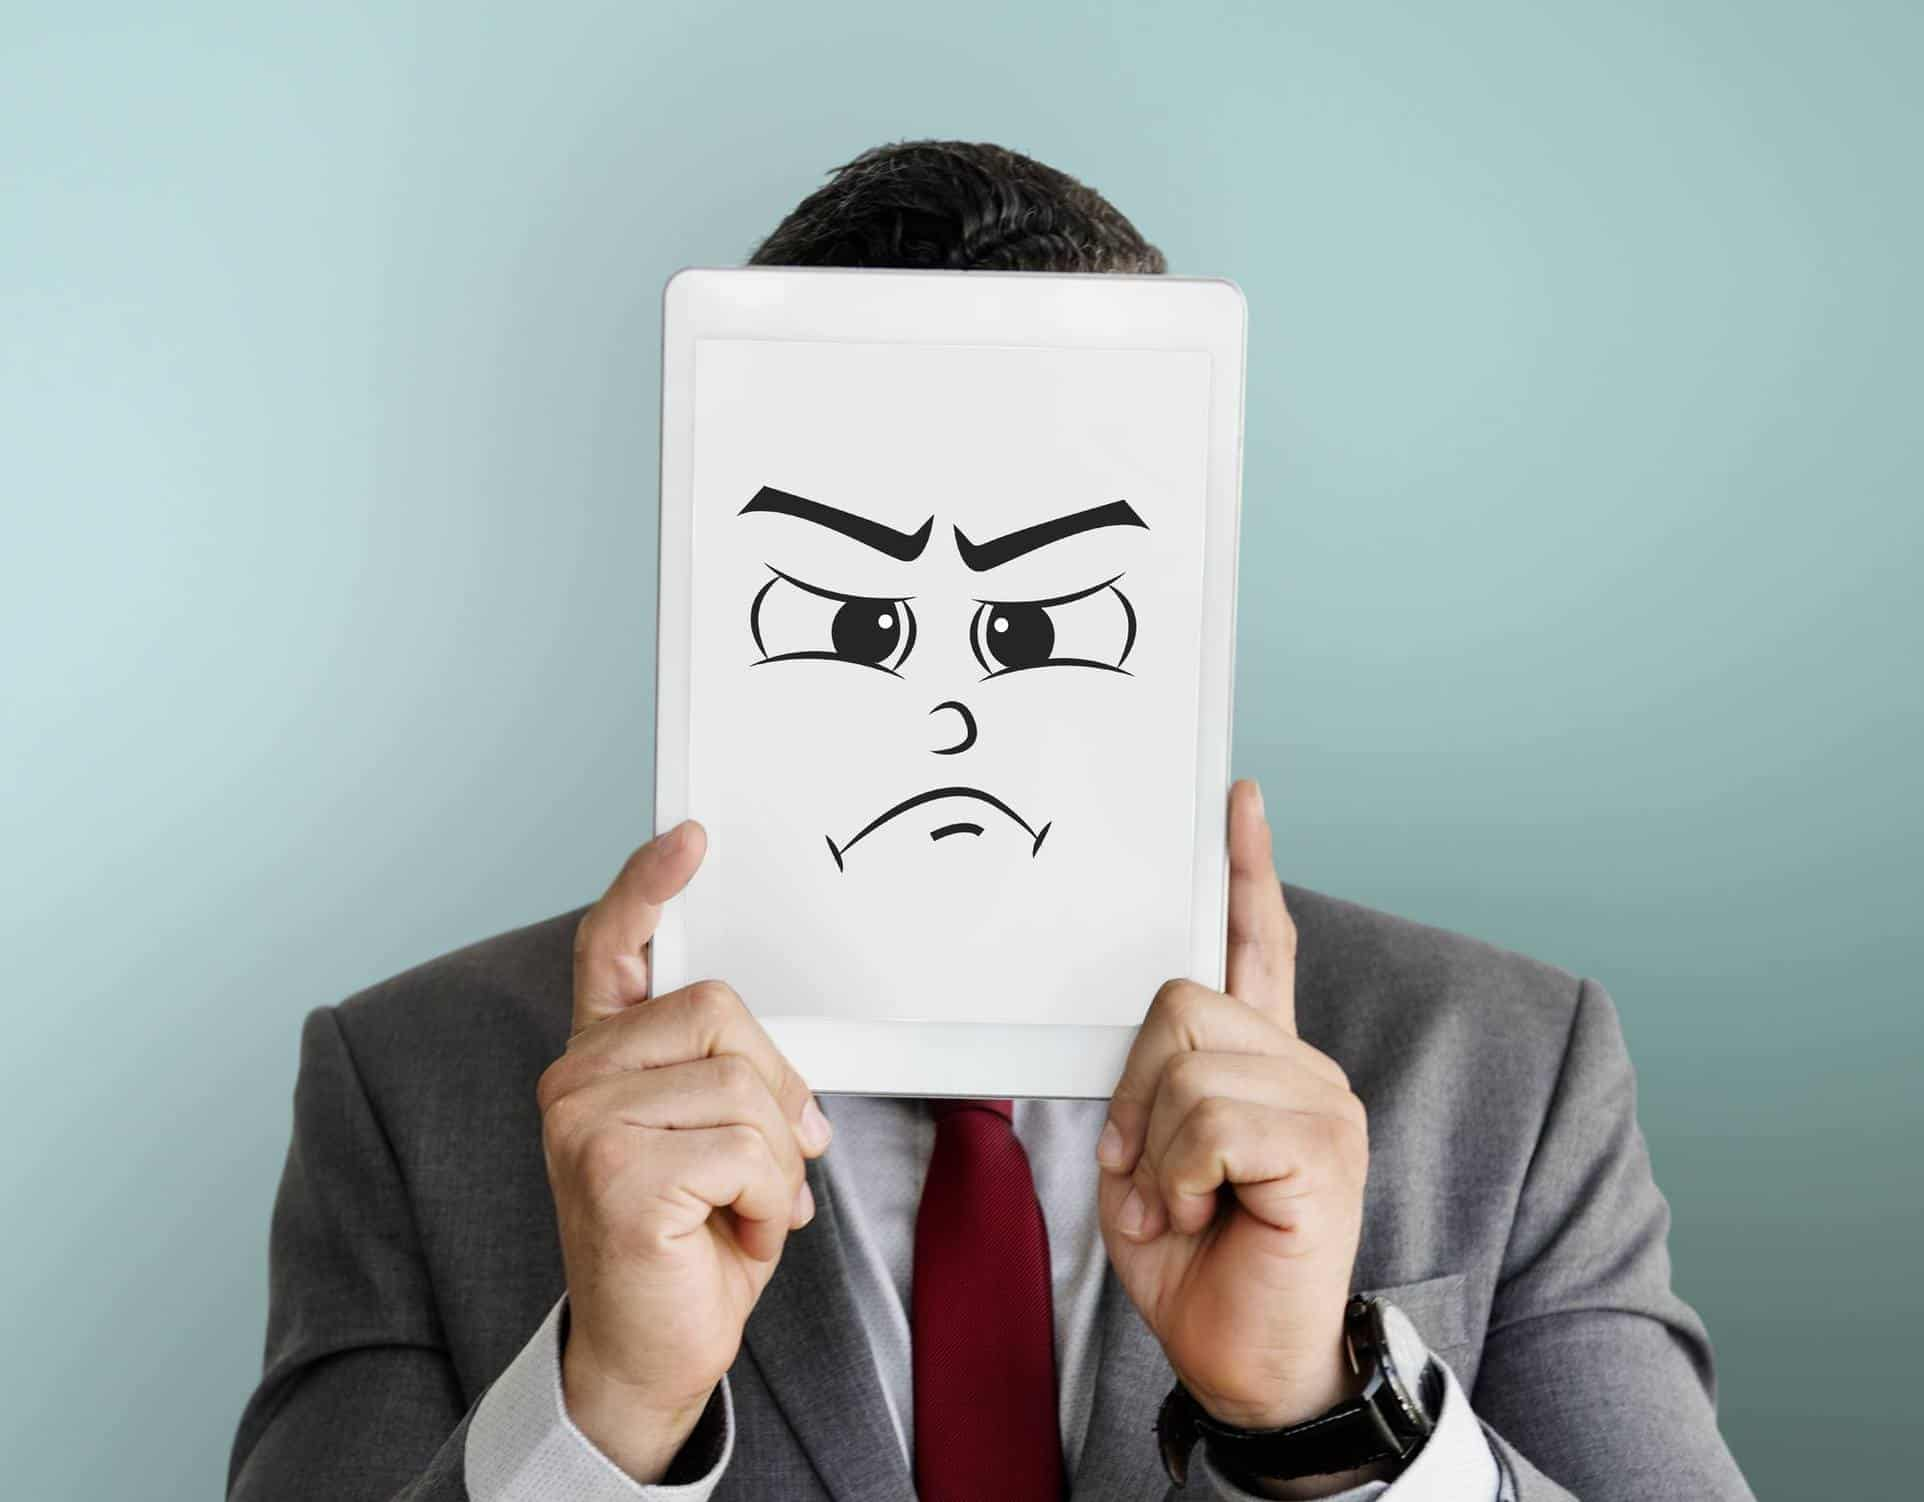 Why Are So Many Managers Determined to Prevent Sales?